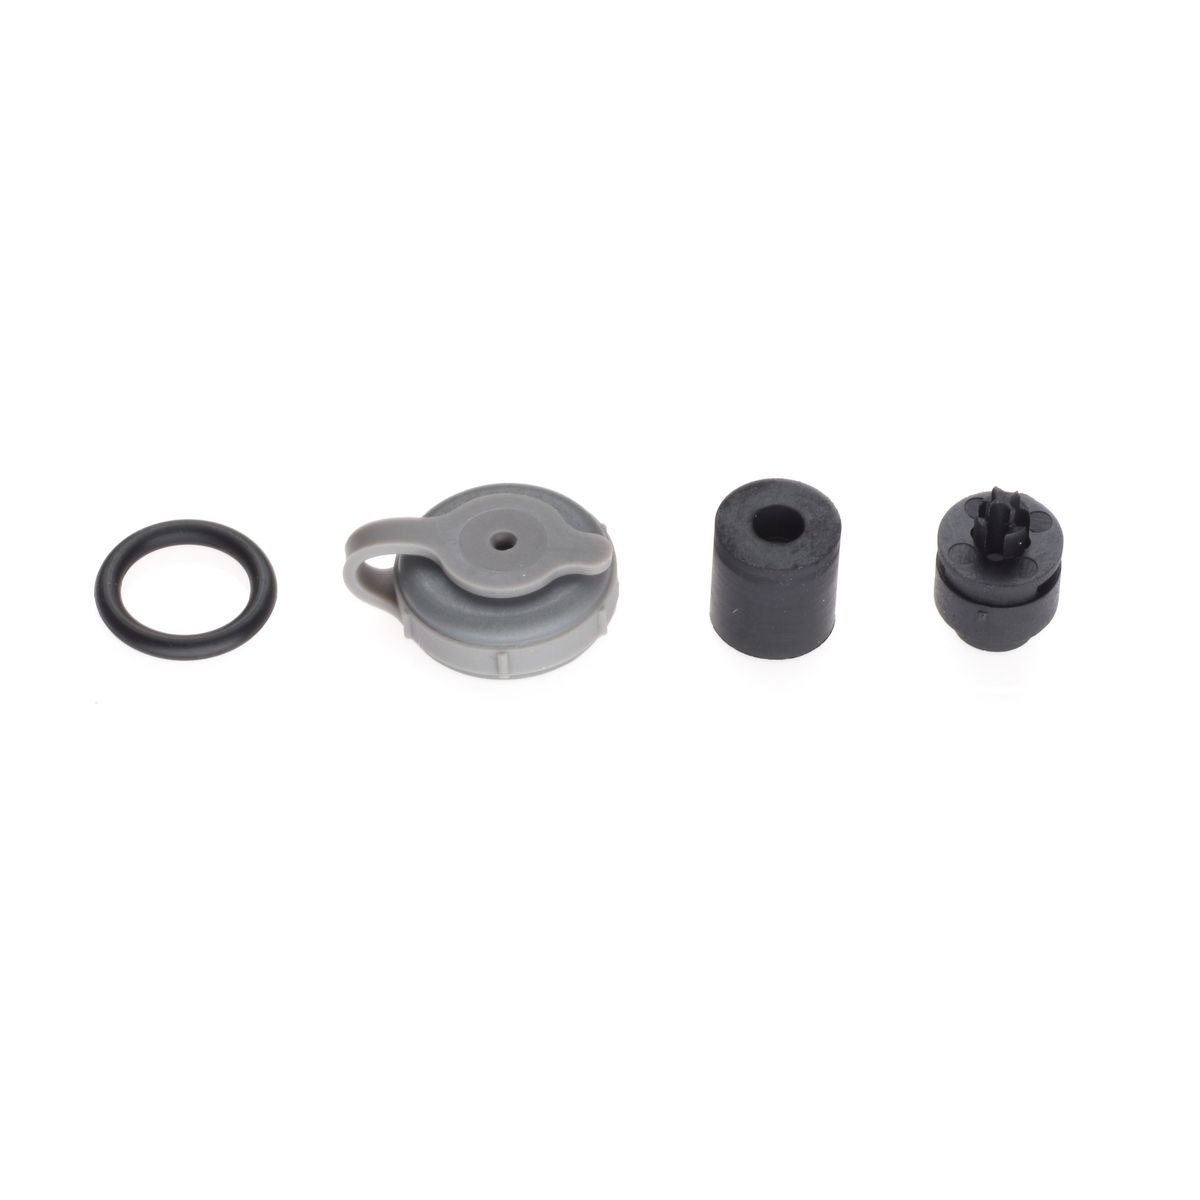 pocket rocket bike parts